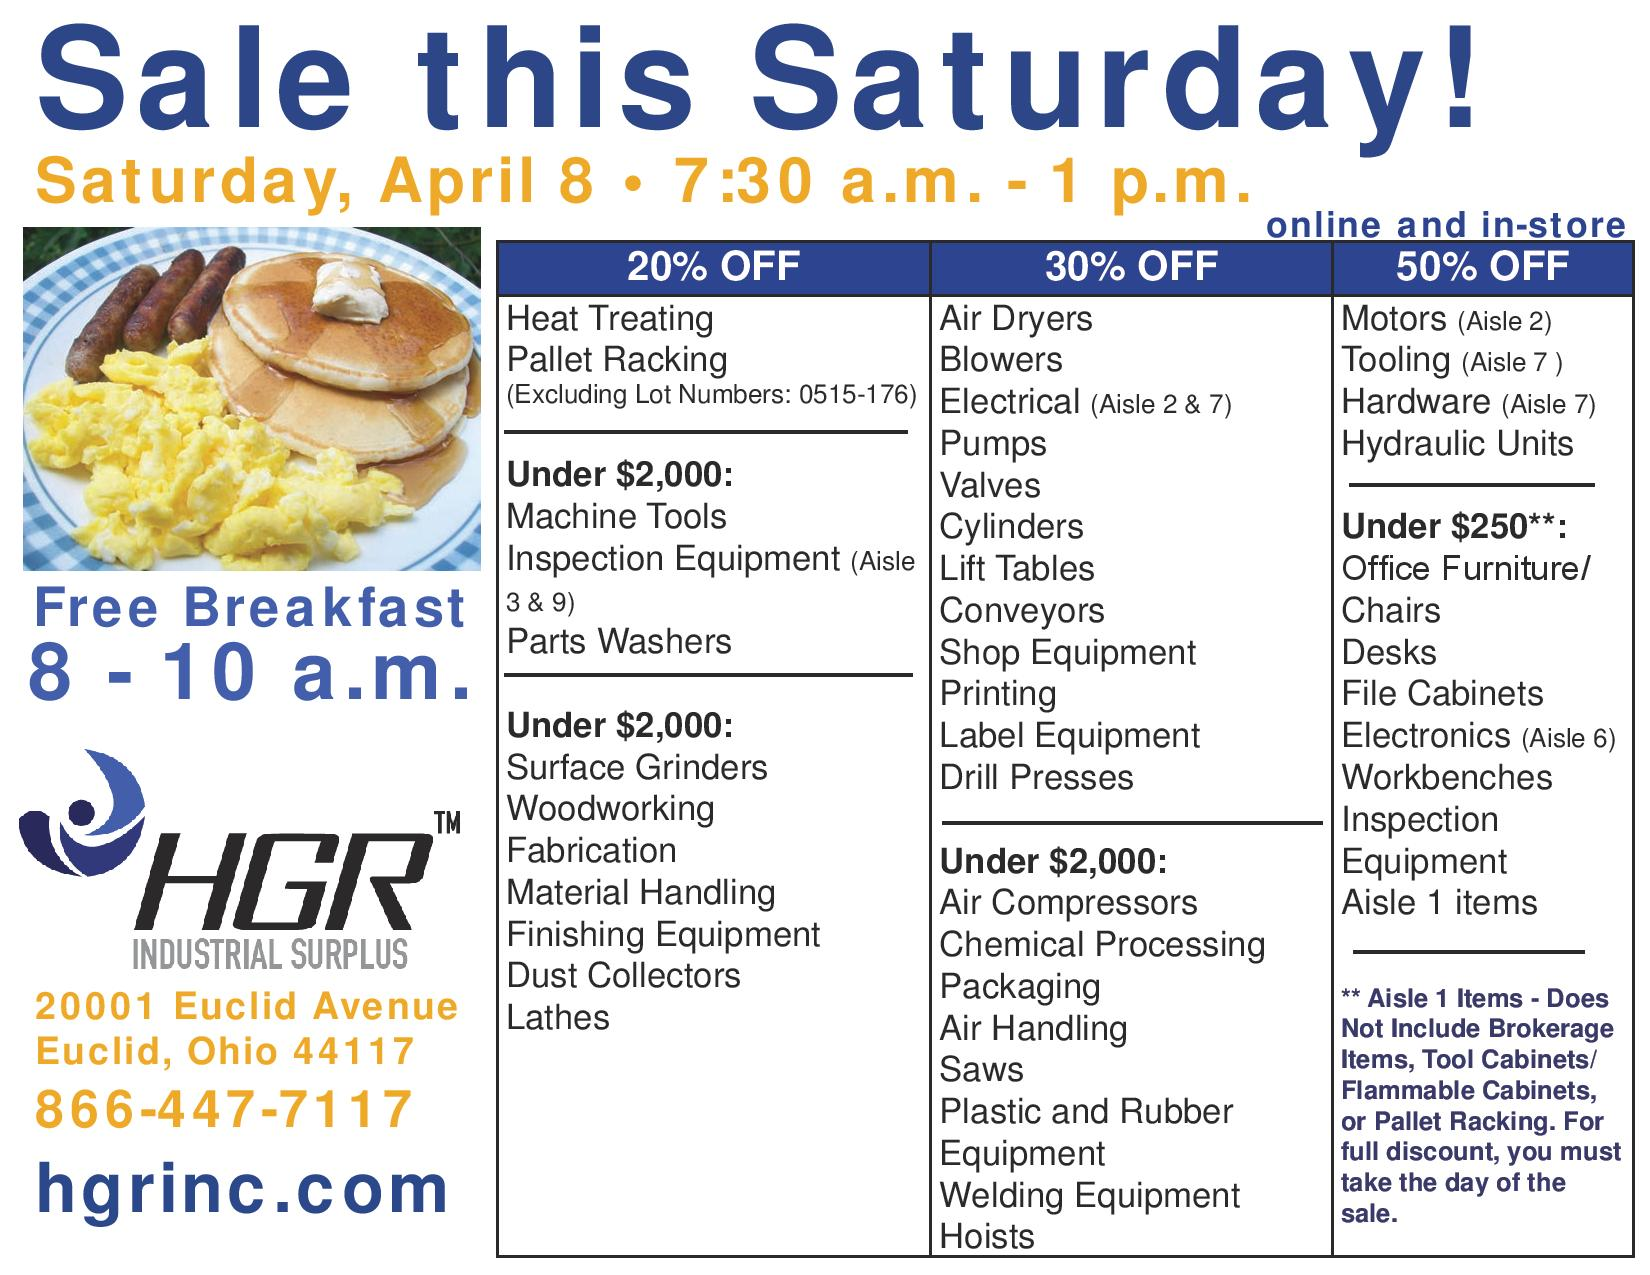 040817 HGR Saturday Sale flyer